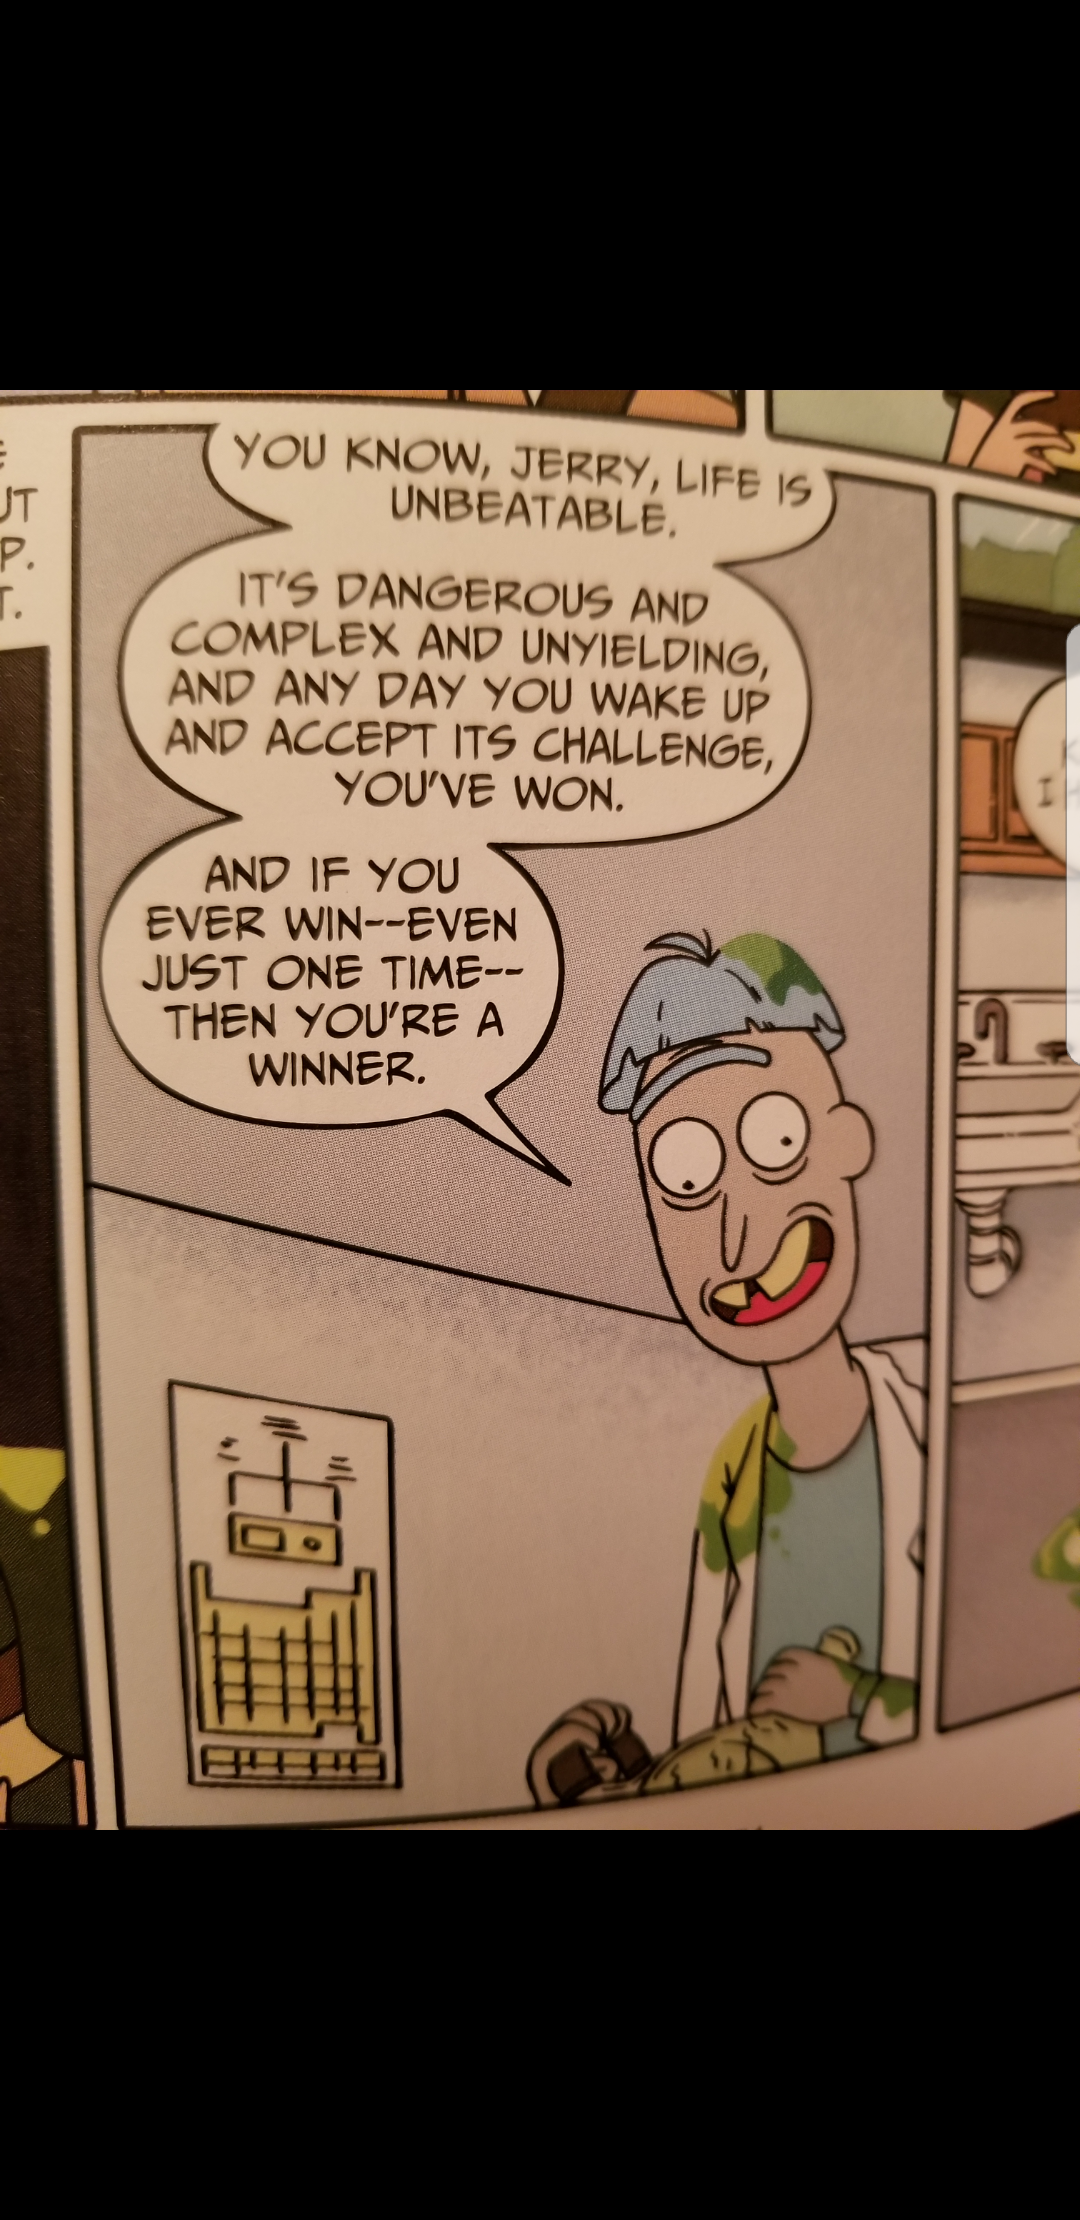 [Image] Doofus Rick motivation